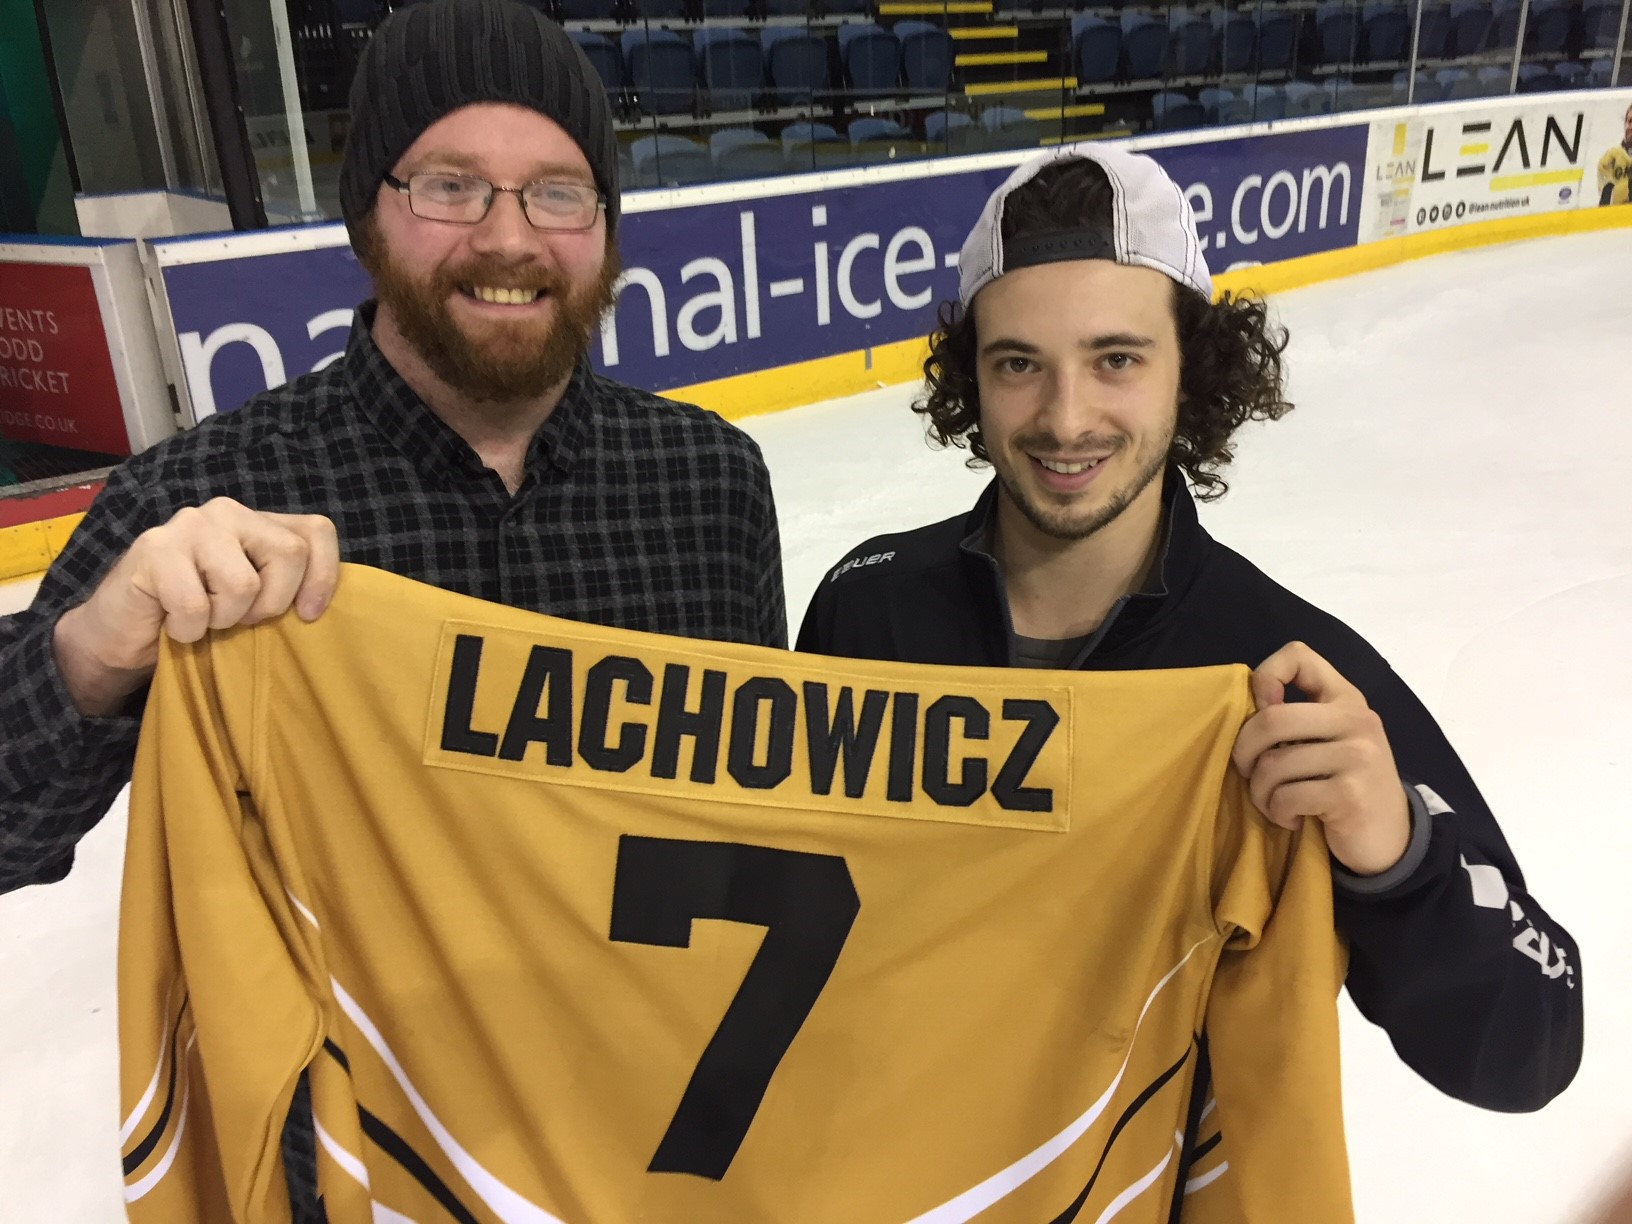 First year fan wins Lacho's shirt Top Image